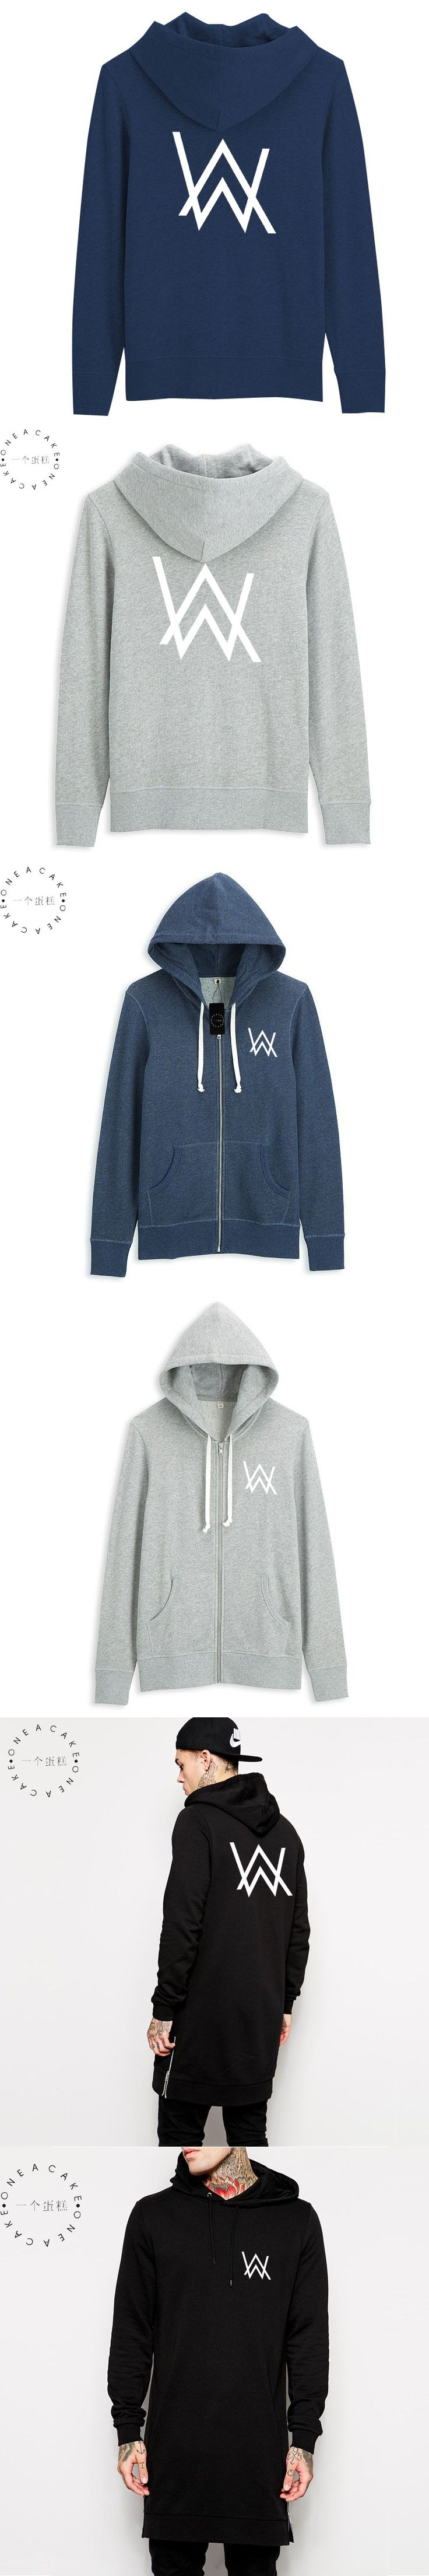 The 955 Best Alan Walker Images On Pinterest Dj And Jaket Hoodie Armin Van Buuren 6 New Winter Fleece Hoodies Men Women Sweatshirts Long Sleeves Hoodedy Cotton